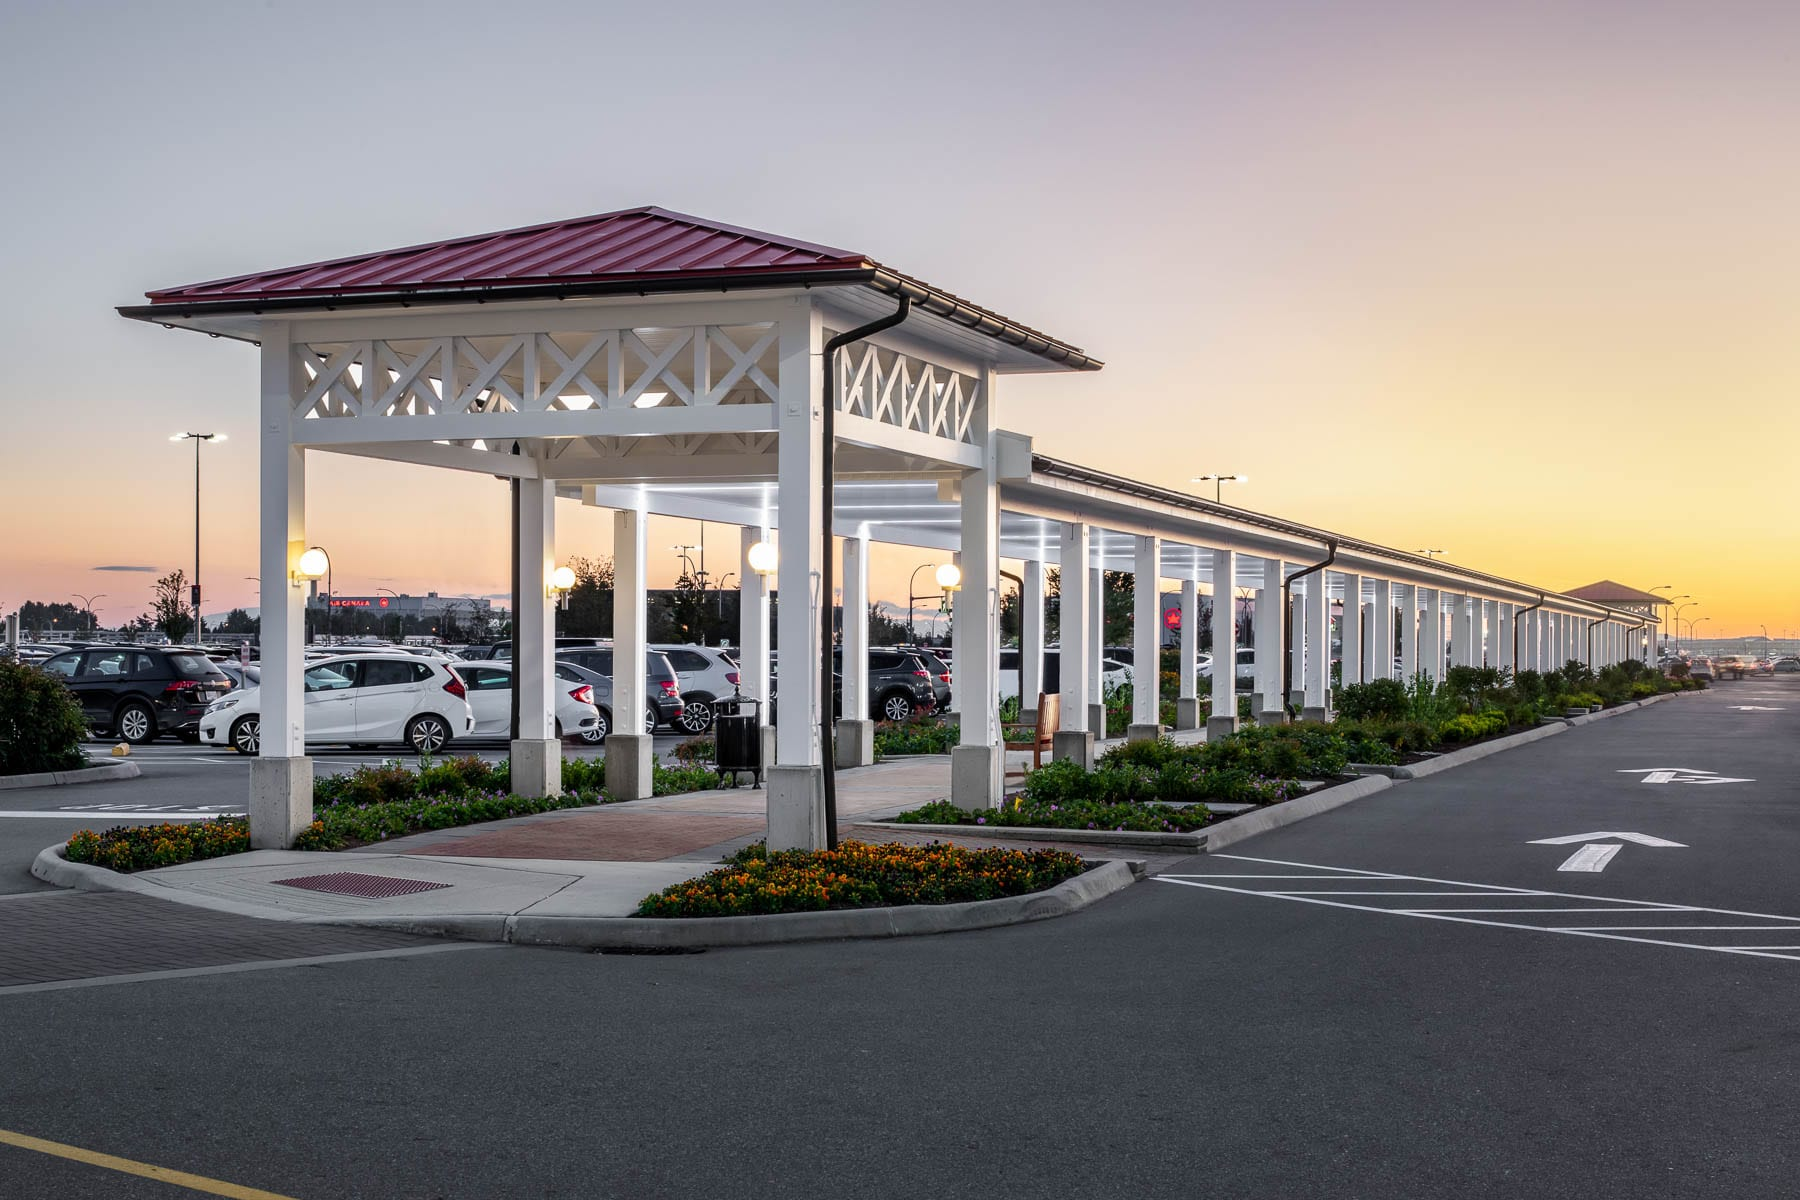 YVR McArthurGlen Designer Outlet's new covered walkway connected to 2 gazebos in parking lot